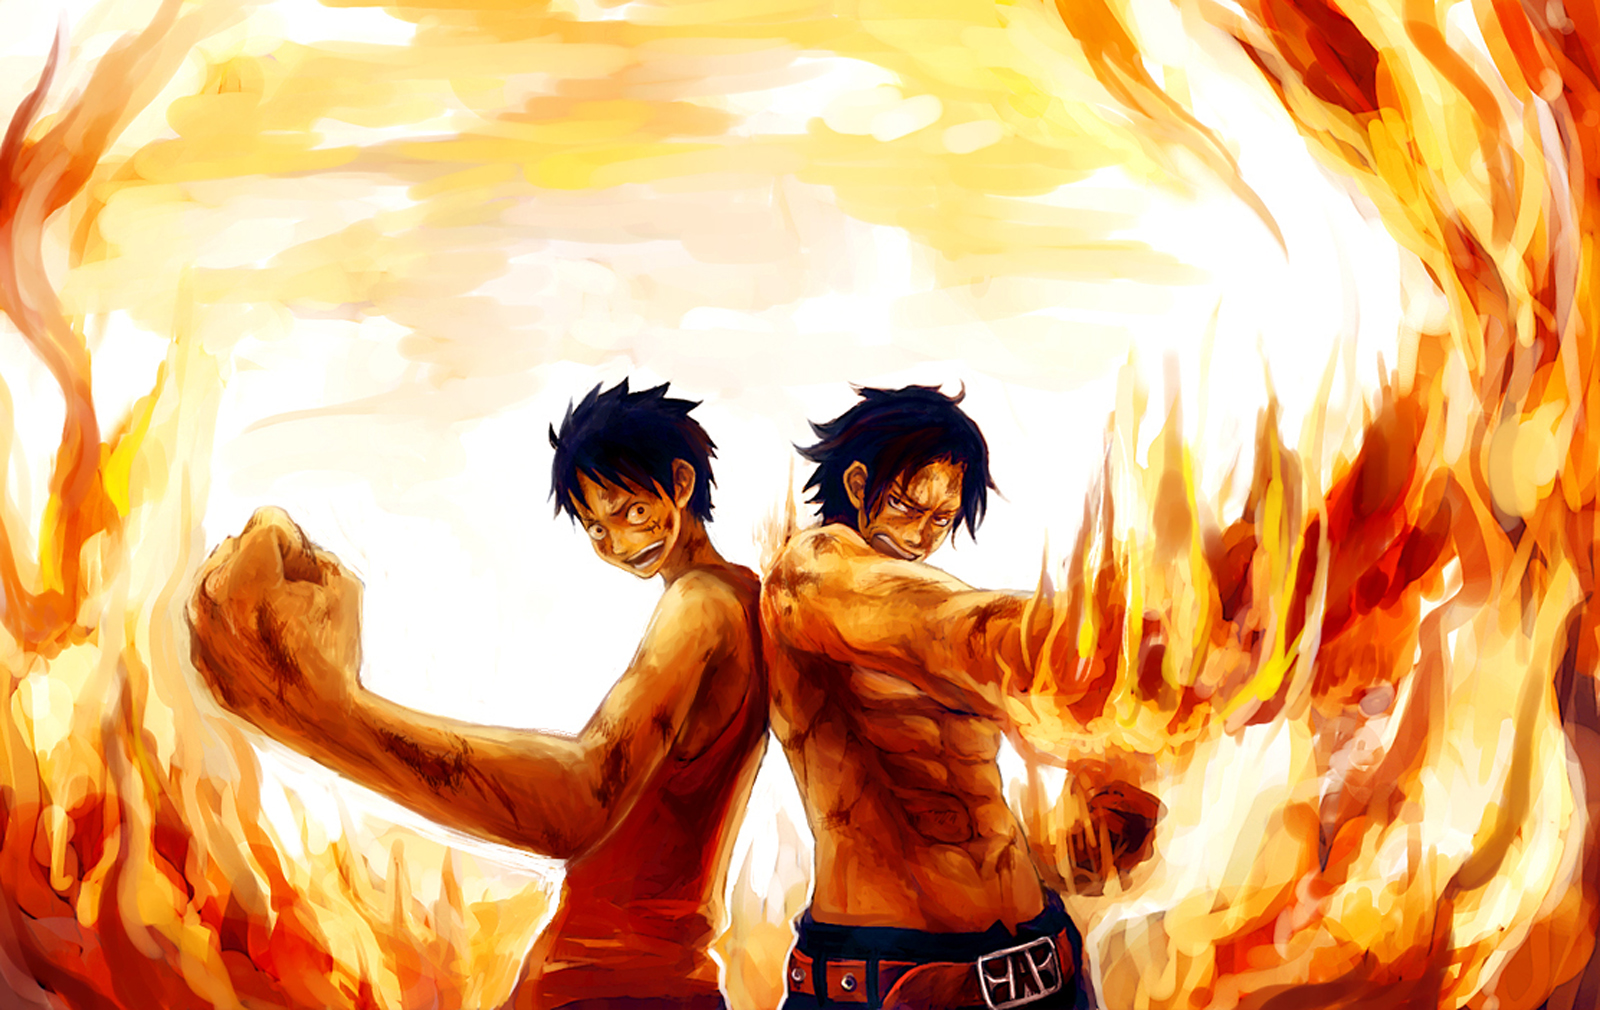 Luffy Ace Brothers One Piece 0572 HD Wallpaper